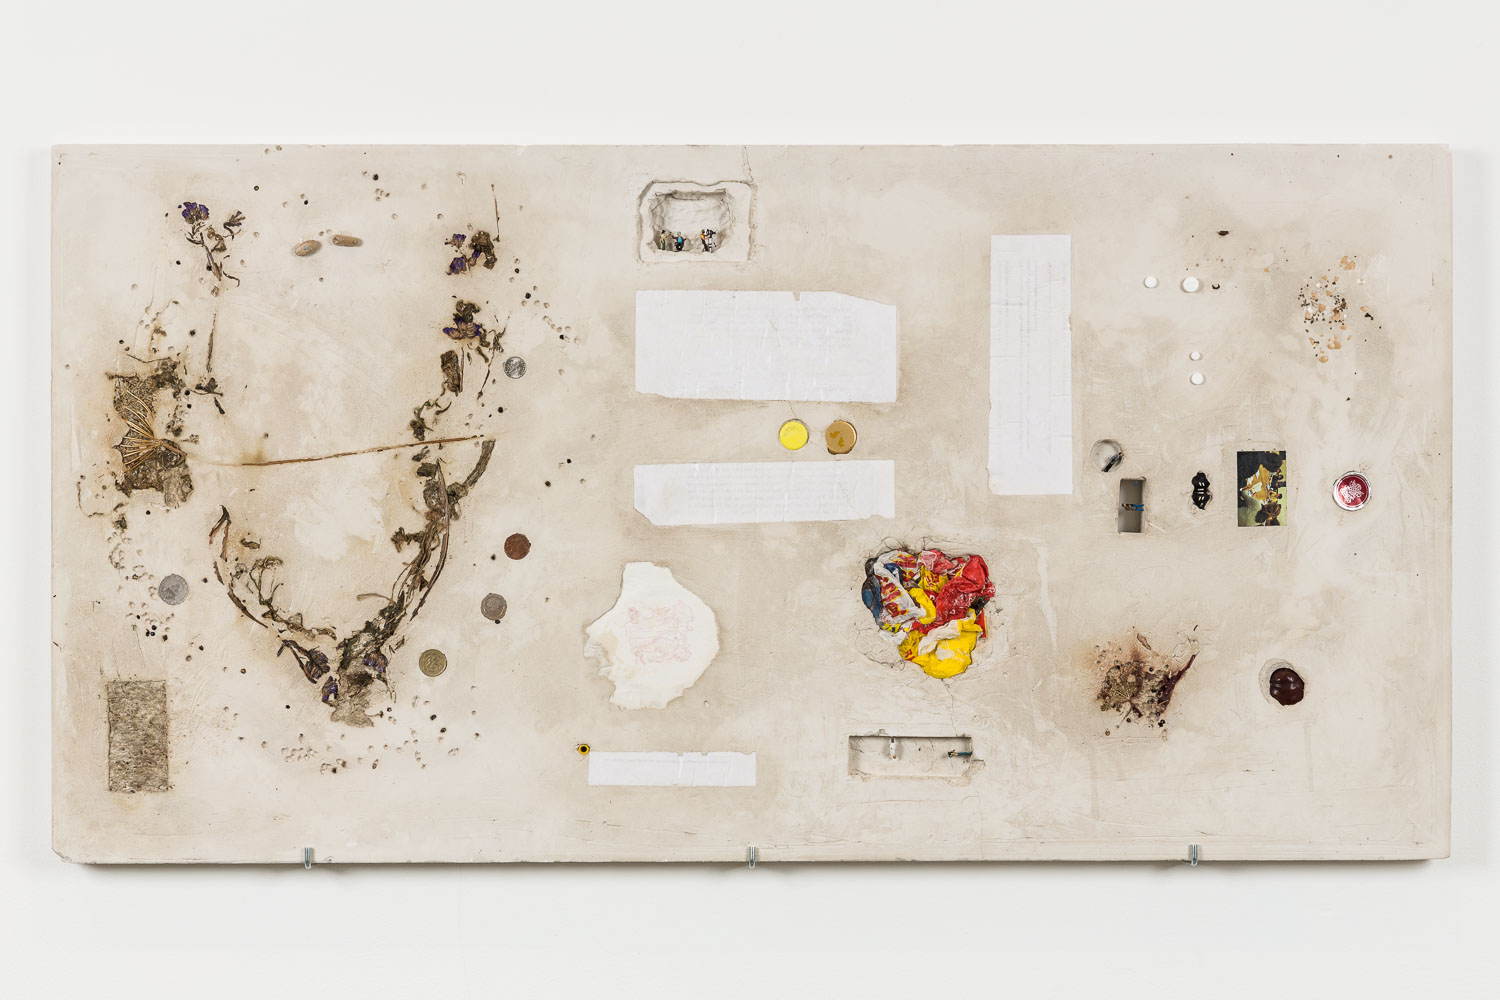 George Rippon Forever Summerhouse, 2015 Limonium, lentils, coins, paper, photograph, allergy tablets, bottle caps, egg shell, chestnut, models, plaster 58.5 x 115 cm 23 x 45 ins. Now Panic , George Rippon